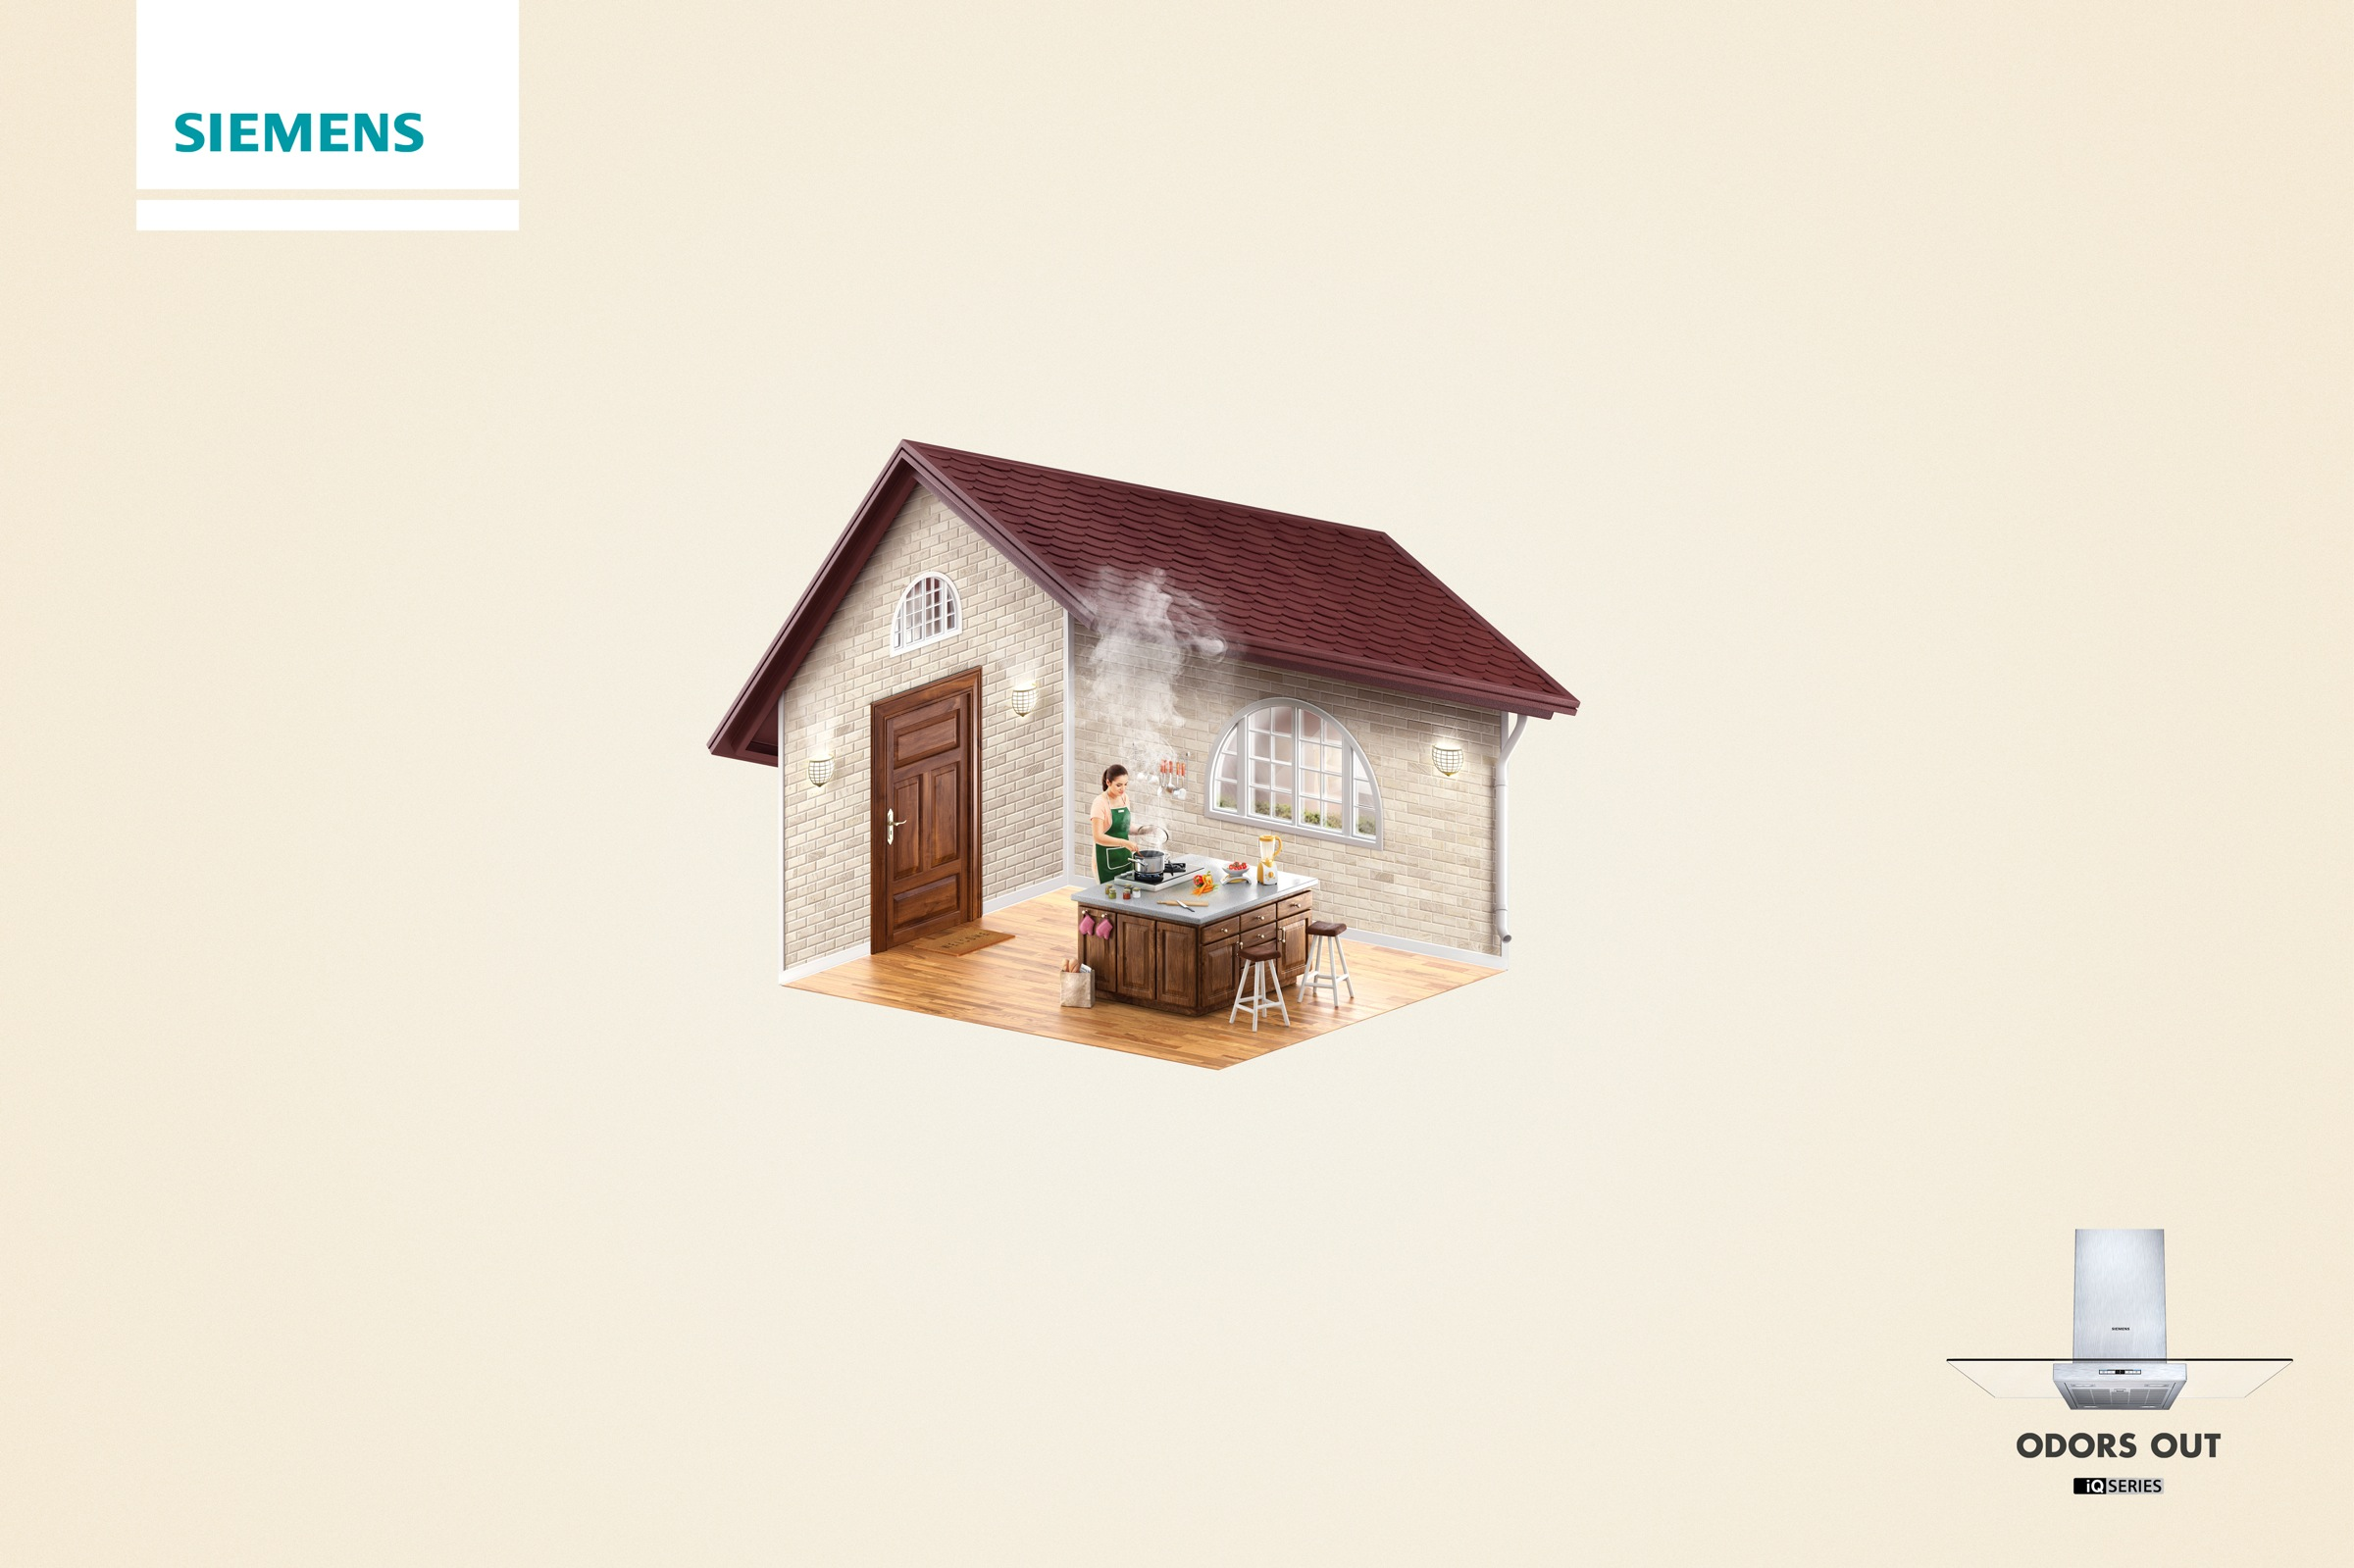 Siemens odors out adeevee for Ad house